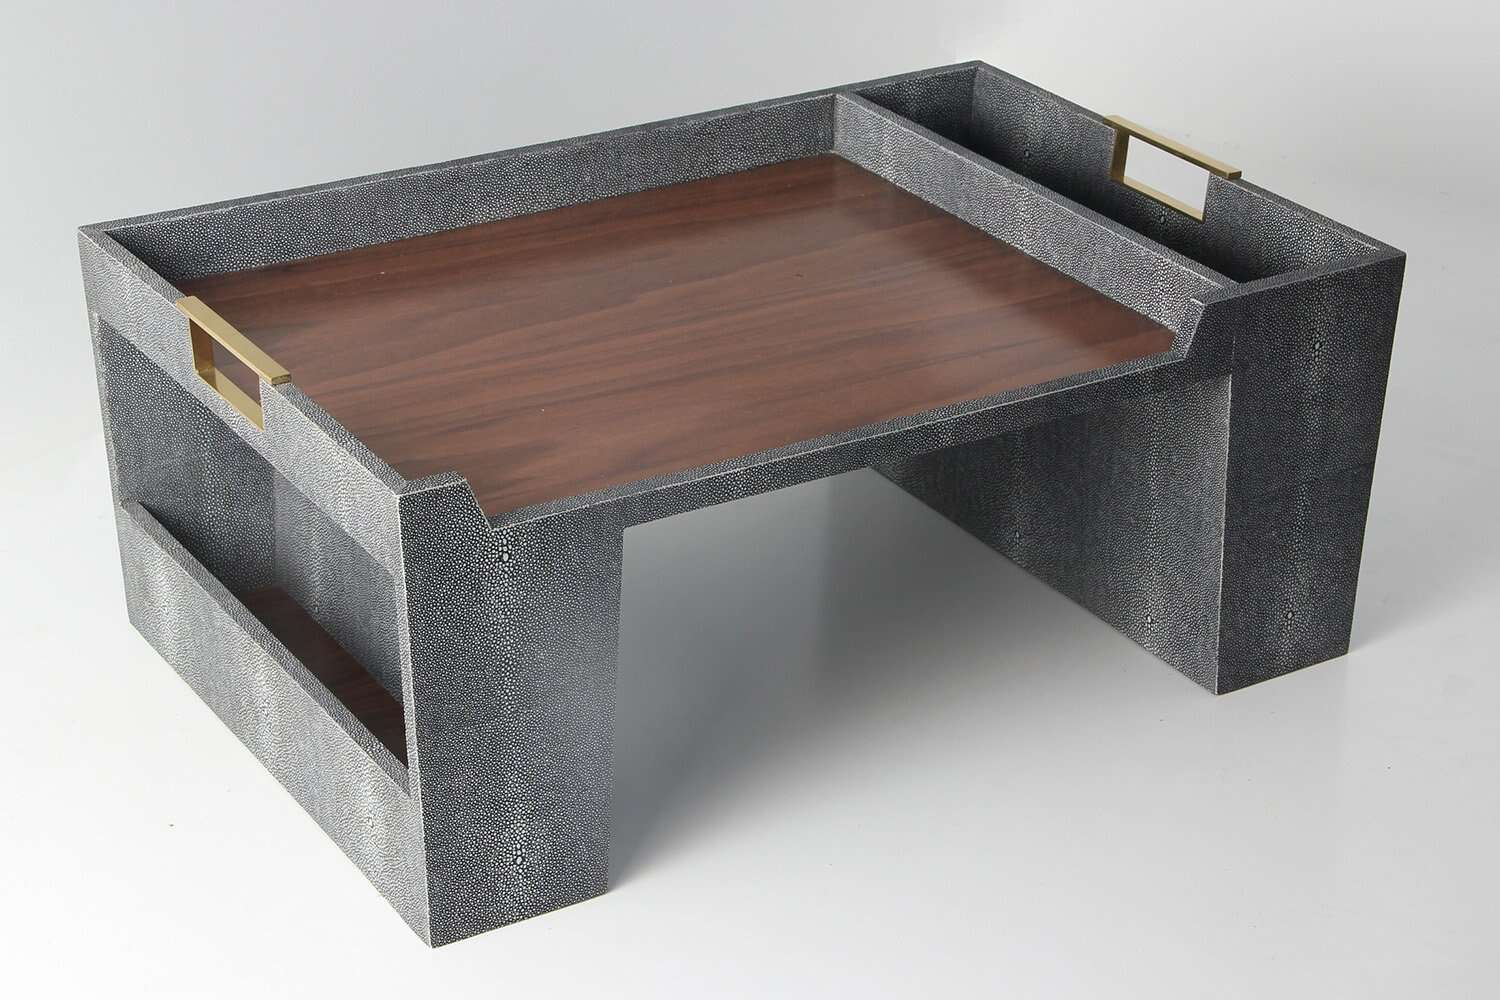 Bed Tray In Charcoal Shagreen A Stylish Bed Tray By Forwood Design